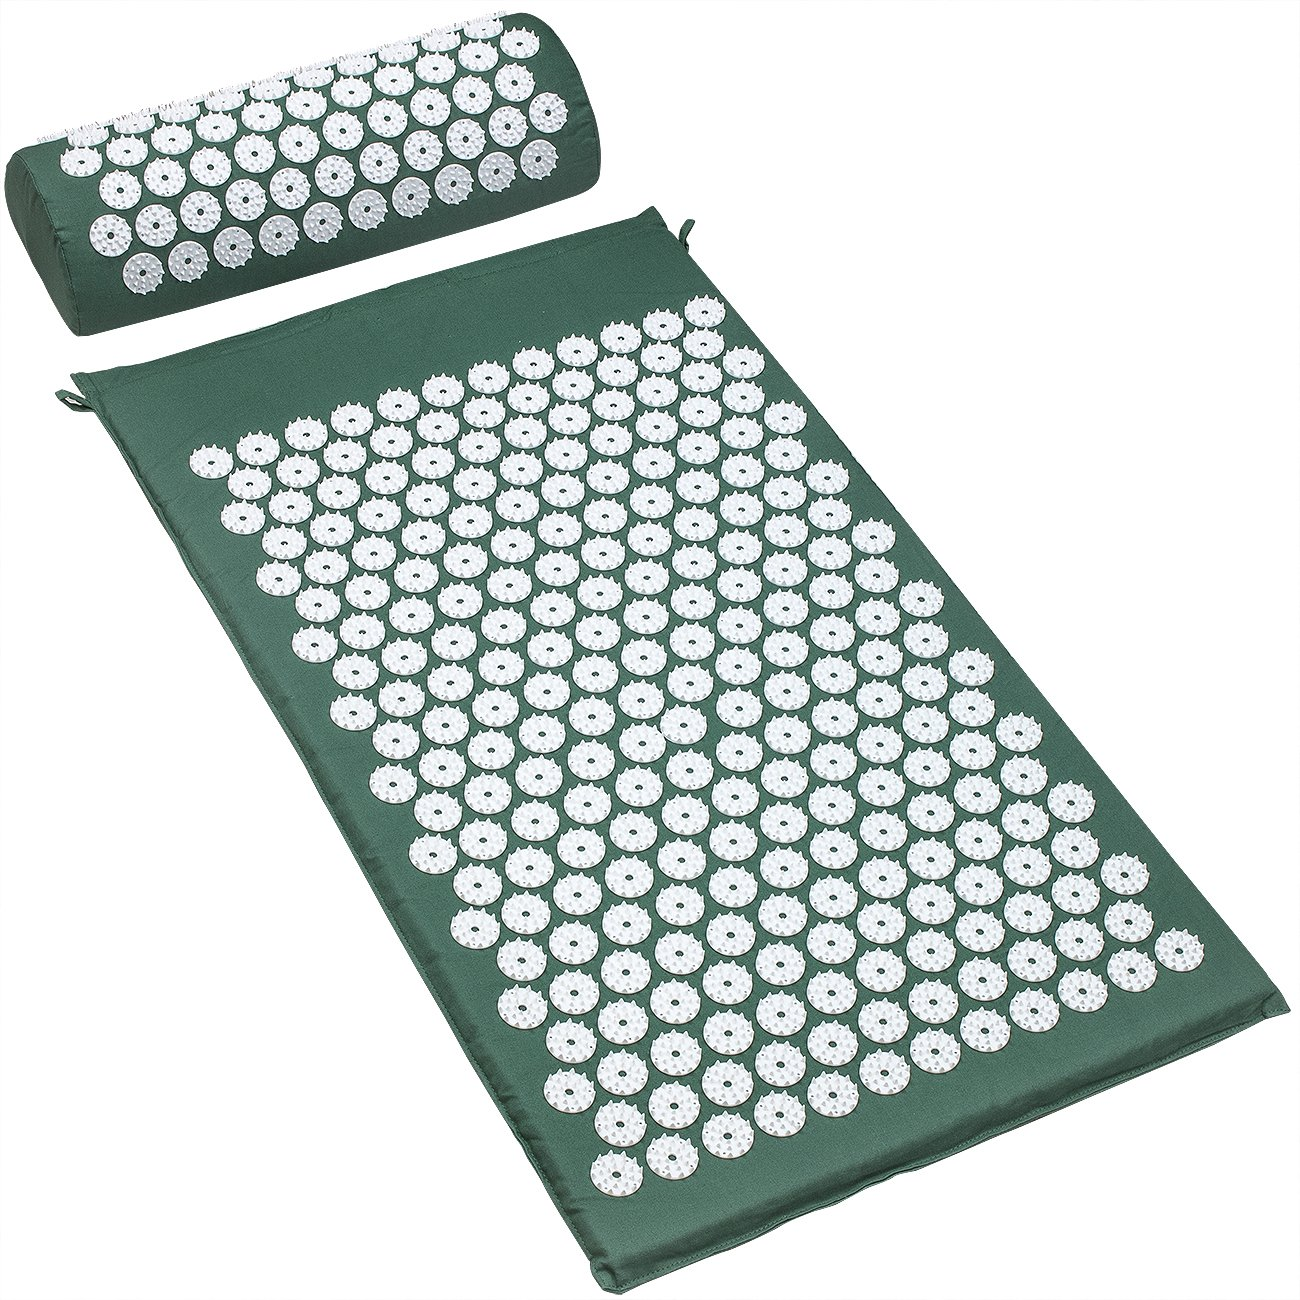 Sivan Back and Neck Pain Relief Acupressure Mat and Pillow Set, Chronic Back Pain Treatment - Relieves Your Stress of Lower Upper Back and Sciatic Pain - Green by Sivan Health and Fitness